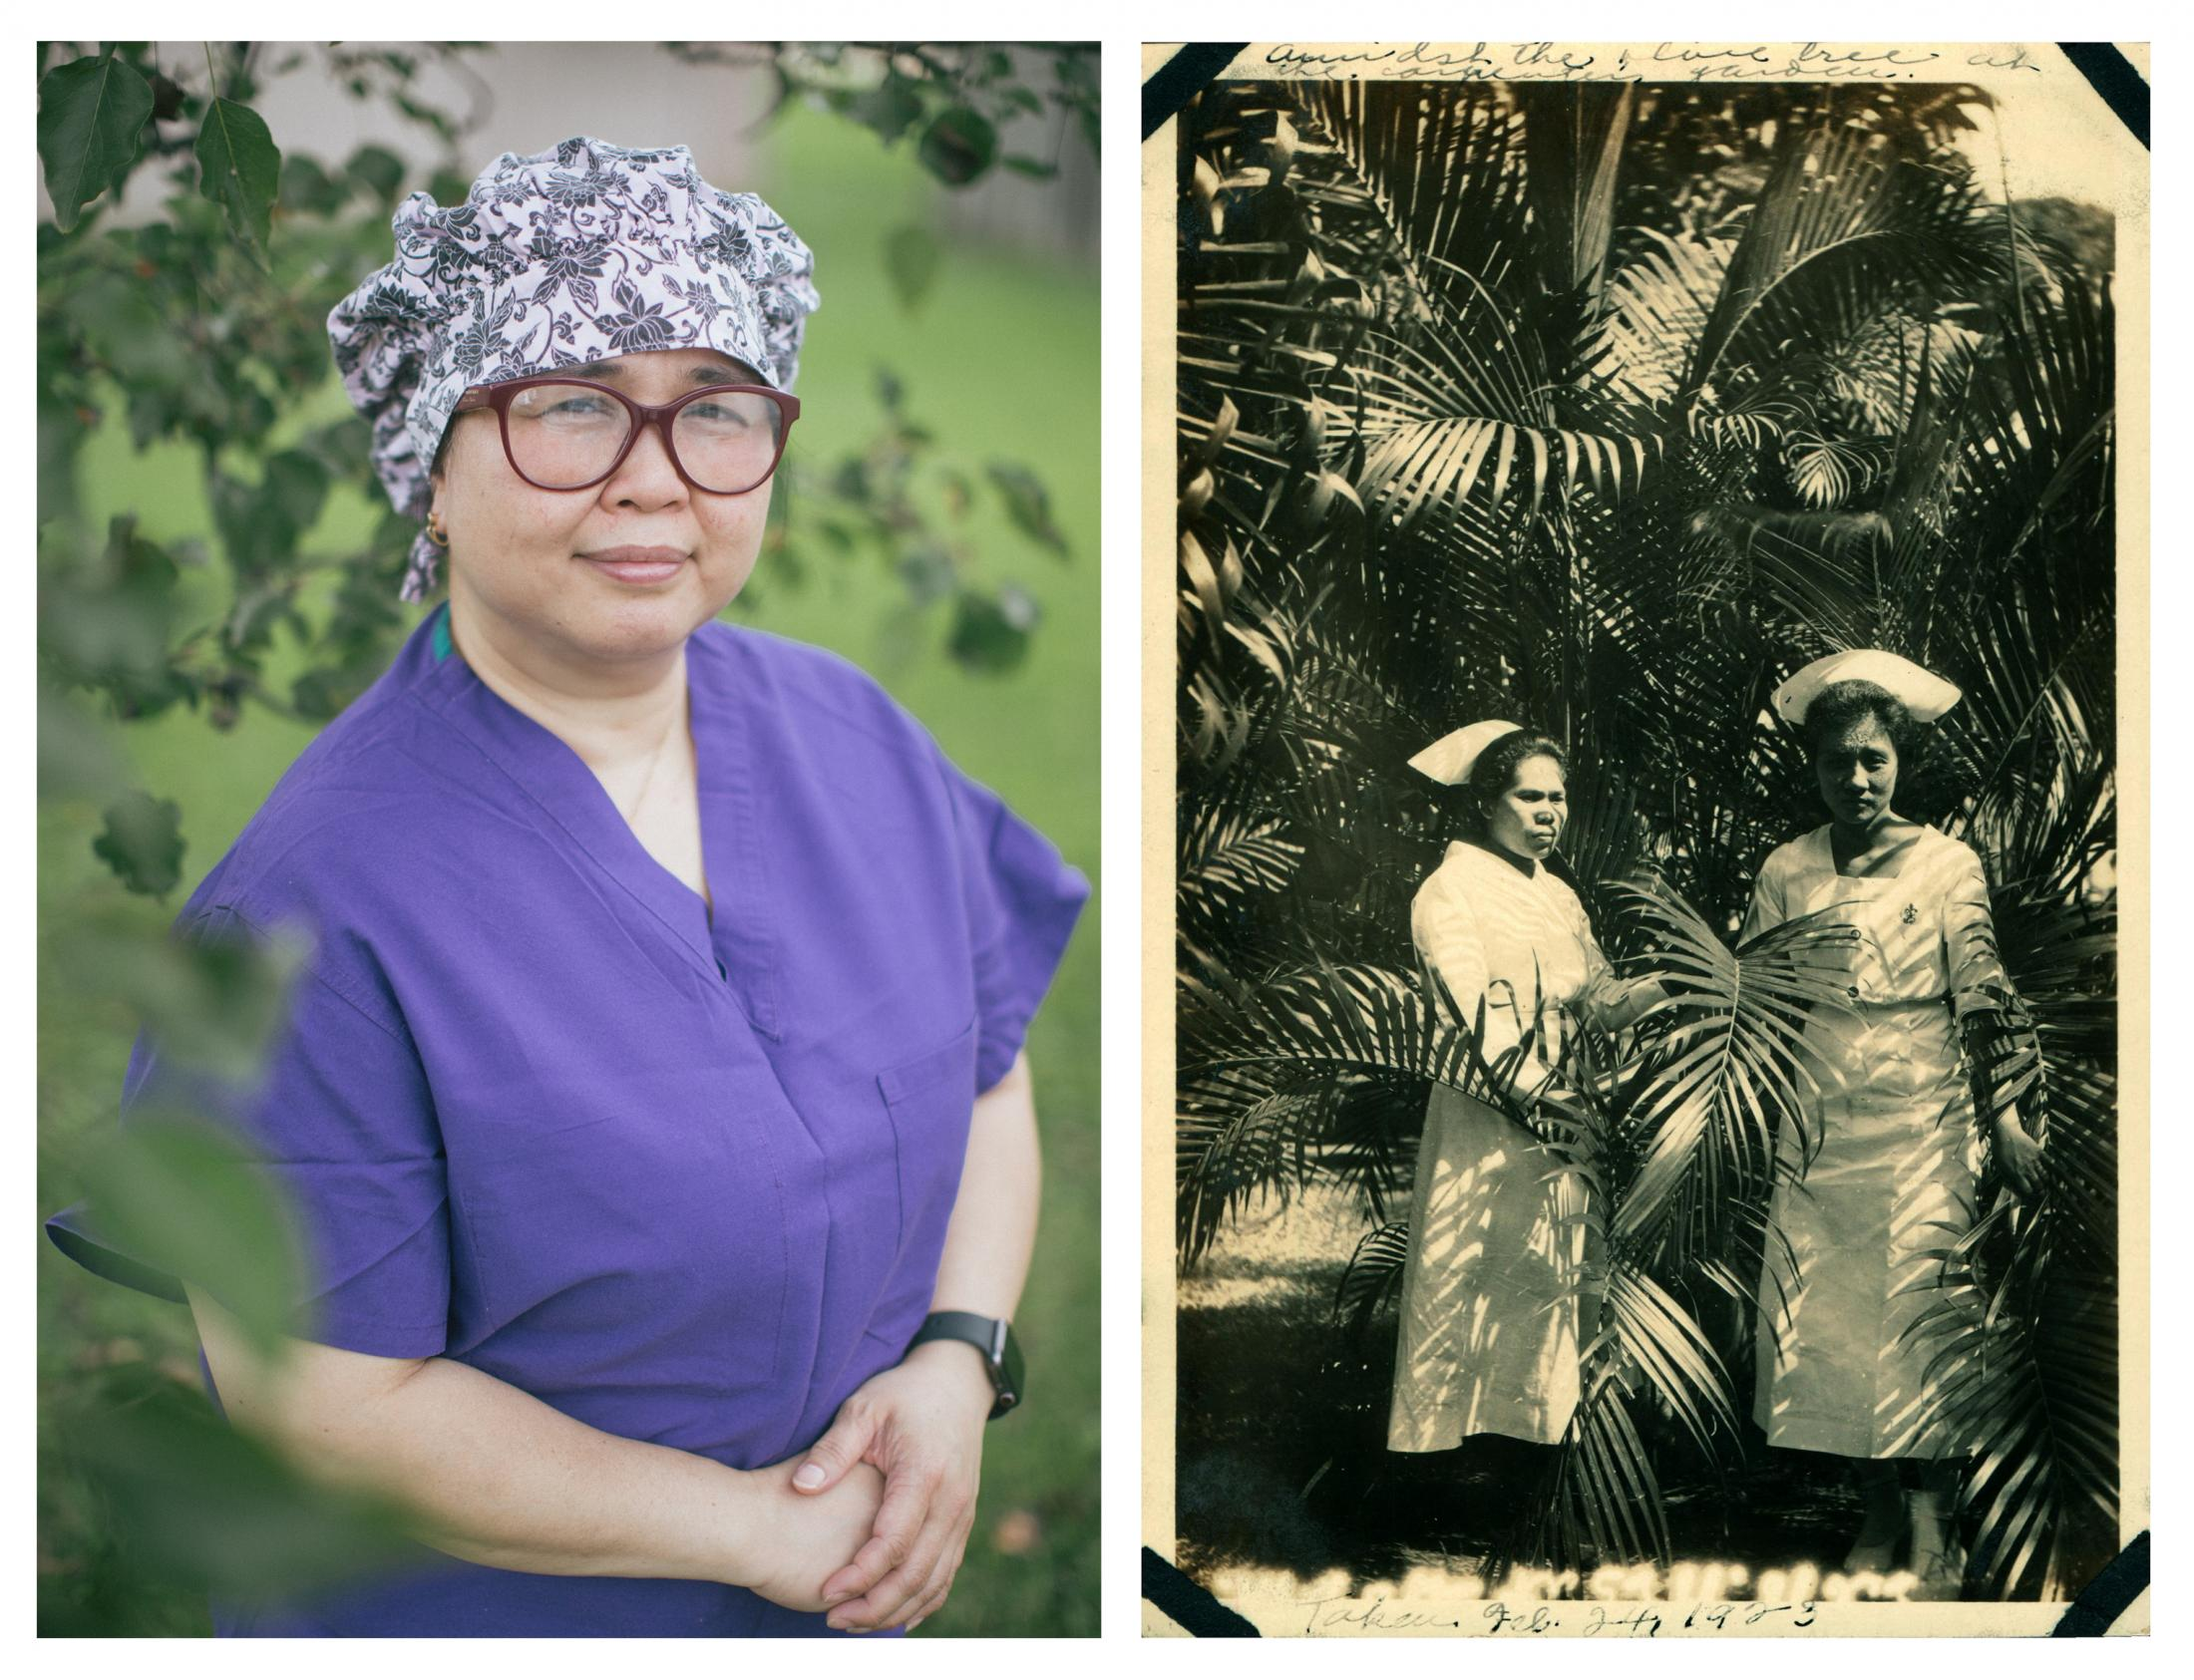 Left: Lovella Eugenio, 47, is an operating room nurse in Baltimore, Maryland. She is among the more than 150,000 Filipino nurses who have migrated to the United States since the 1960s, making them the largest group of immigrant nurses in the country. Right: Filipino nurses pose in a garden in Mindanao, Philippines in 1923 before they eventually migrated to the United States. Archival Image: Bjoring Center for Nursing Historical Inquiry